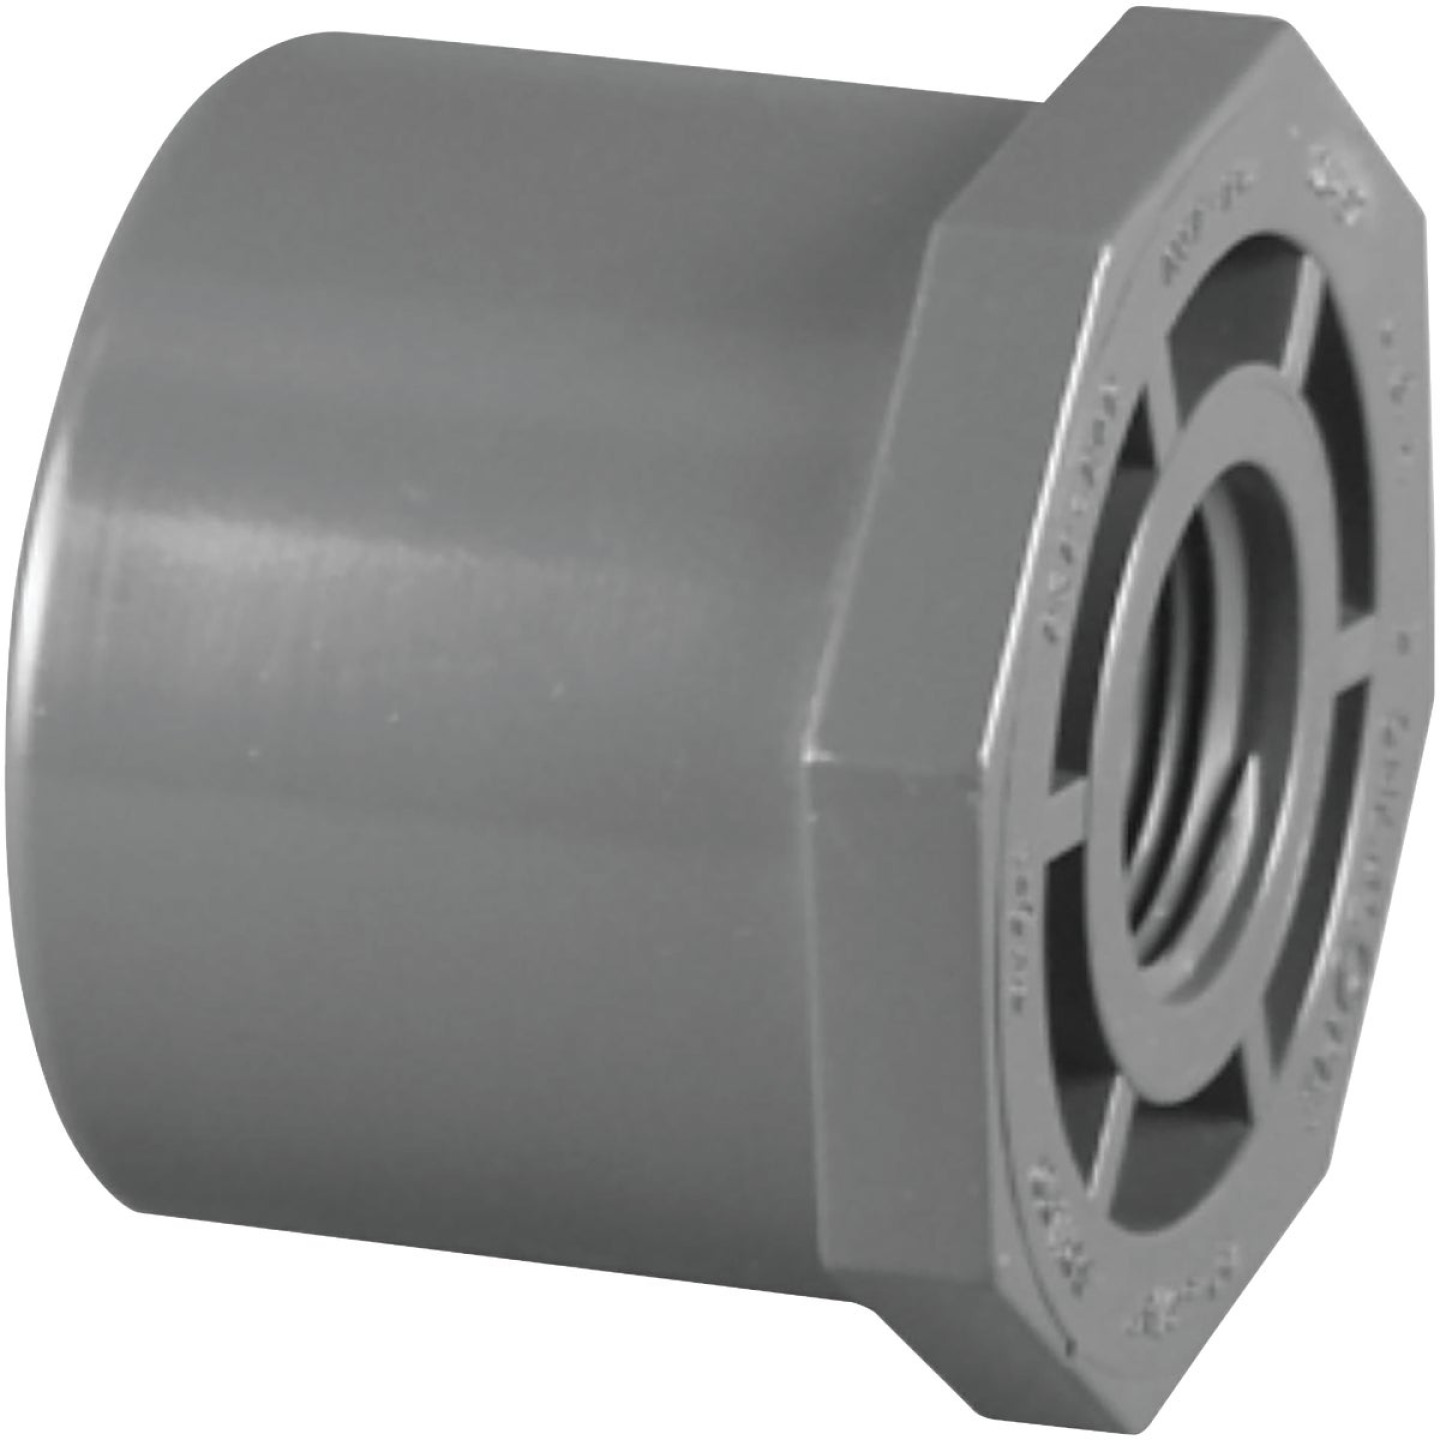 Charlotte Pipe 2 In. Spigot x 1 In. FIP Schedule 80 PVC Reducing Bushing Image 1